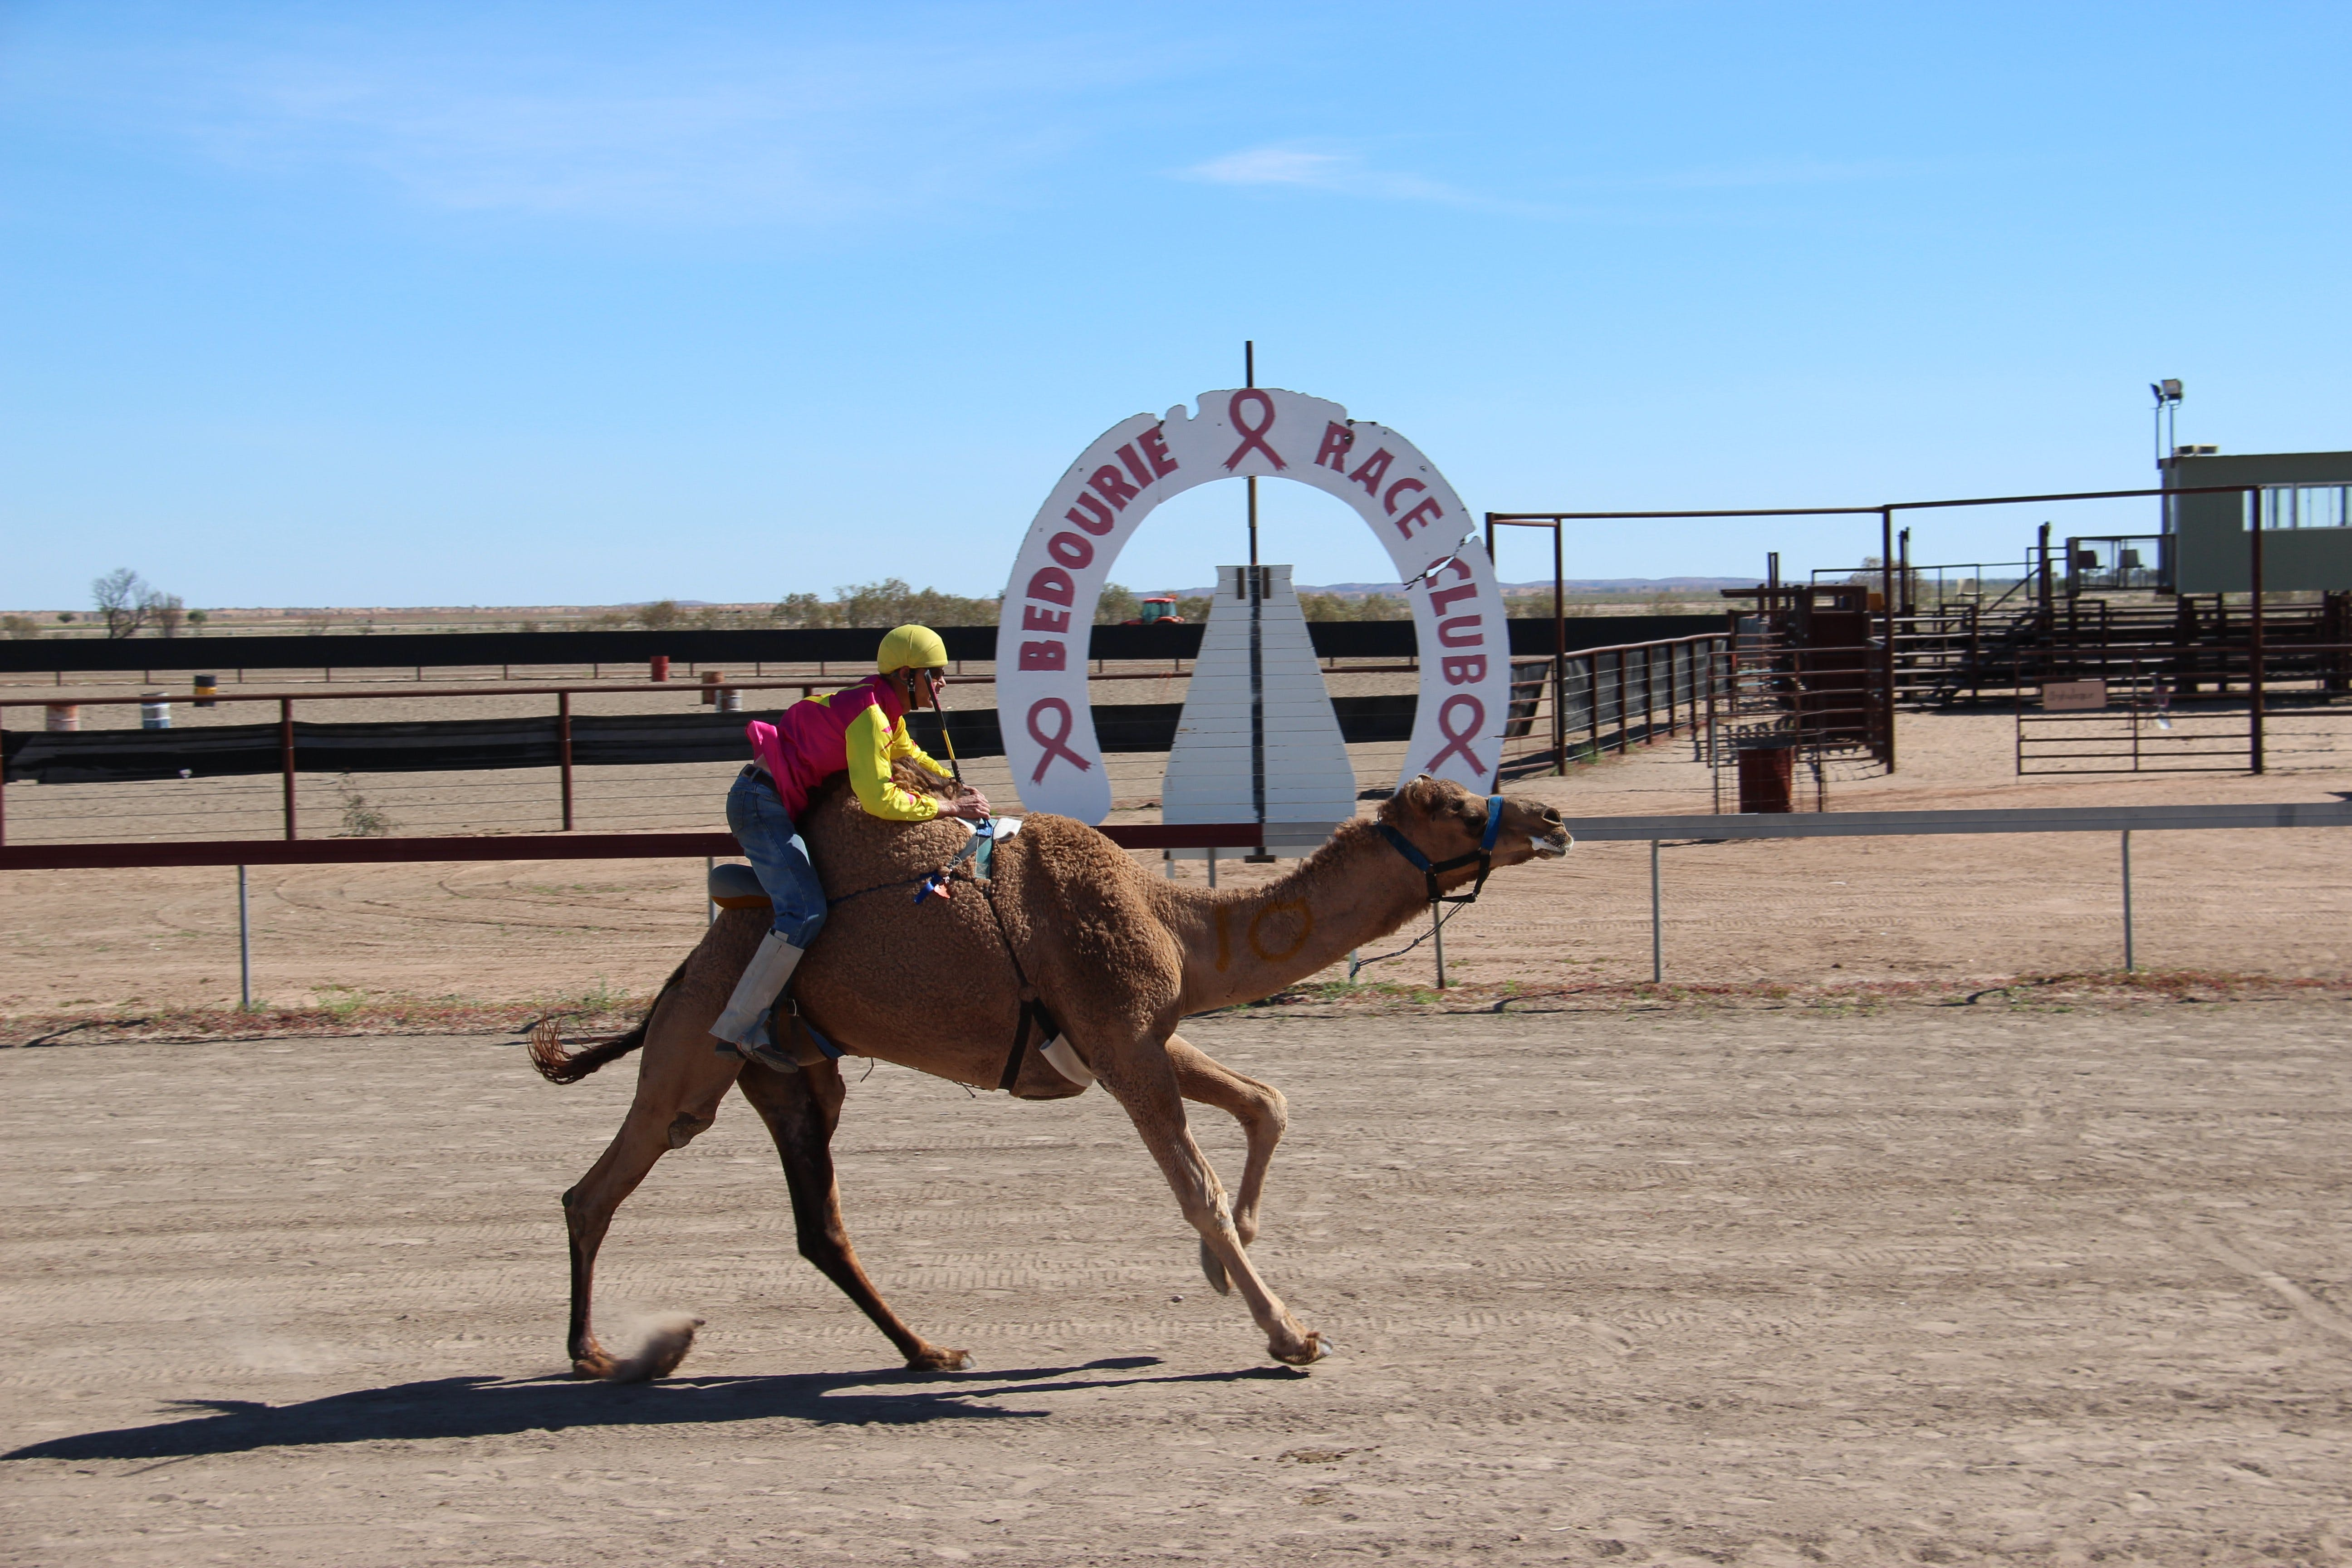 Bedourie Camel and Pig Races and Camp oven Cook-off - Australia Accommodation